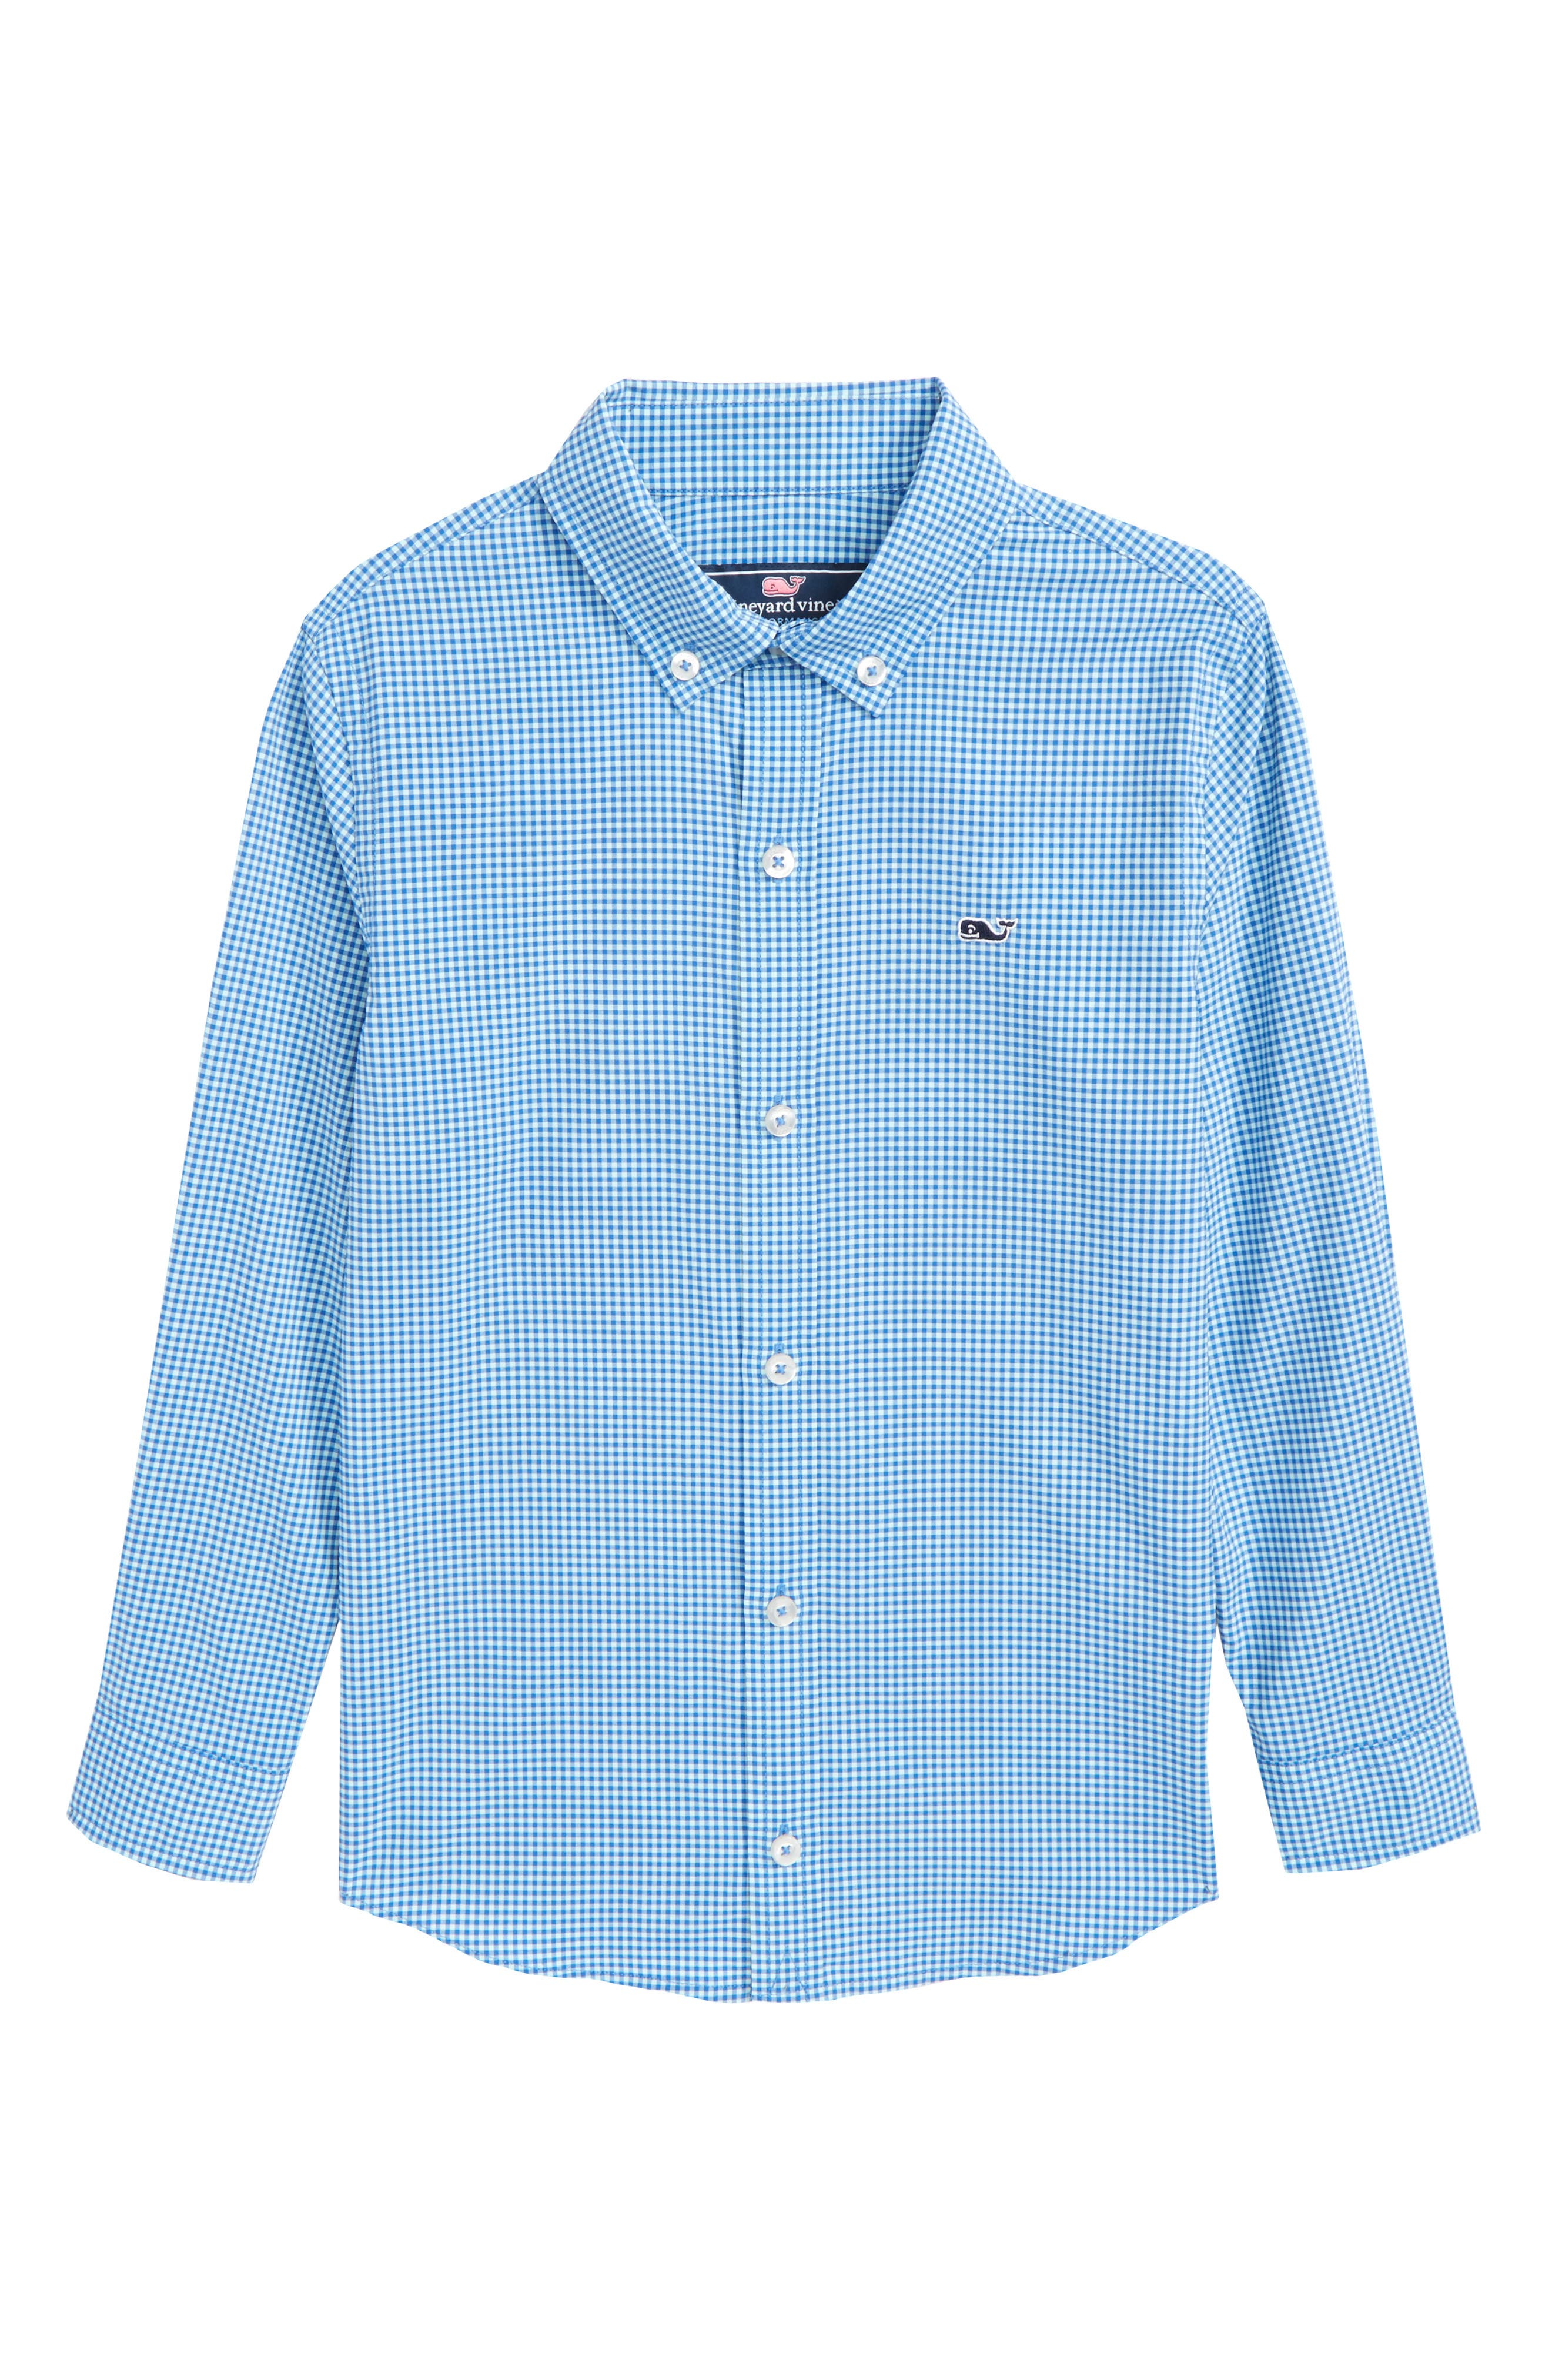 Marina Gingham Check Whale Shirt,                             Main thumbnail 1, color,                             Clearwater